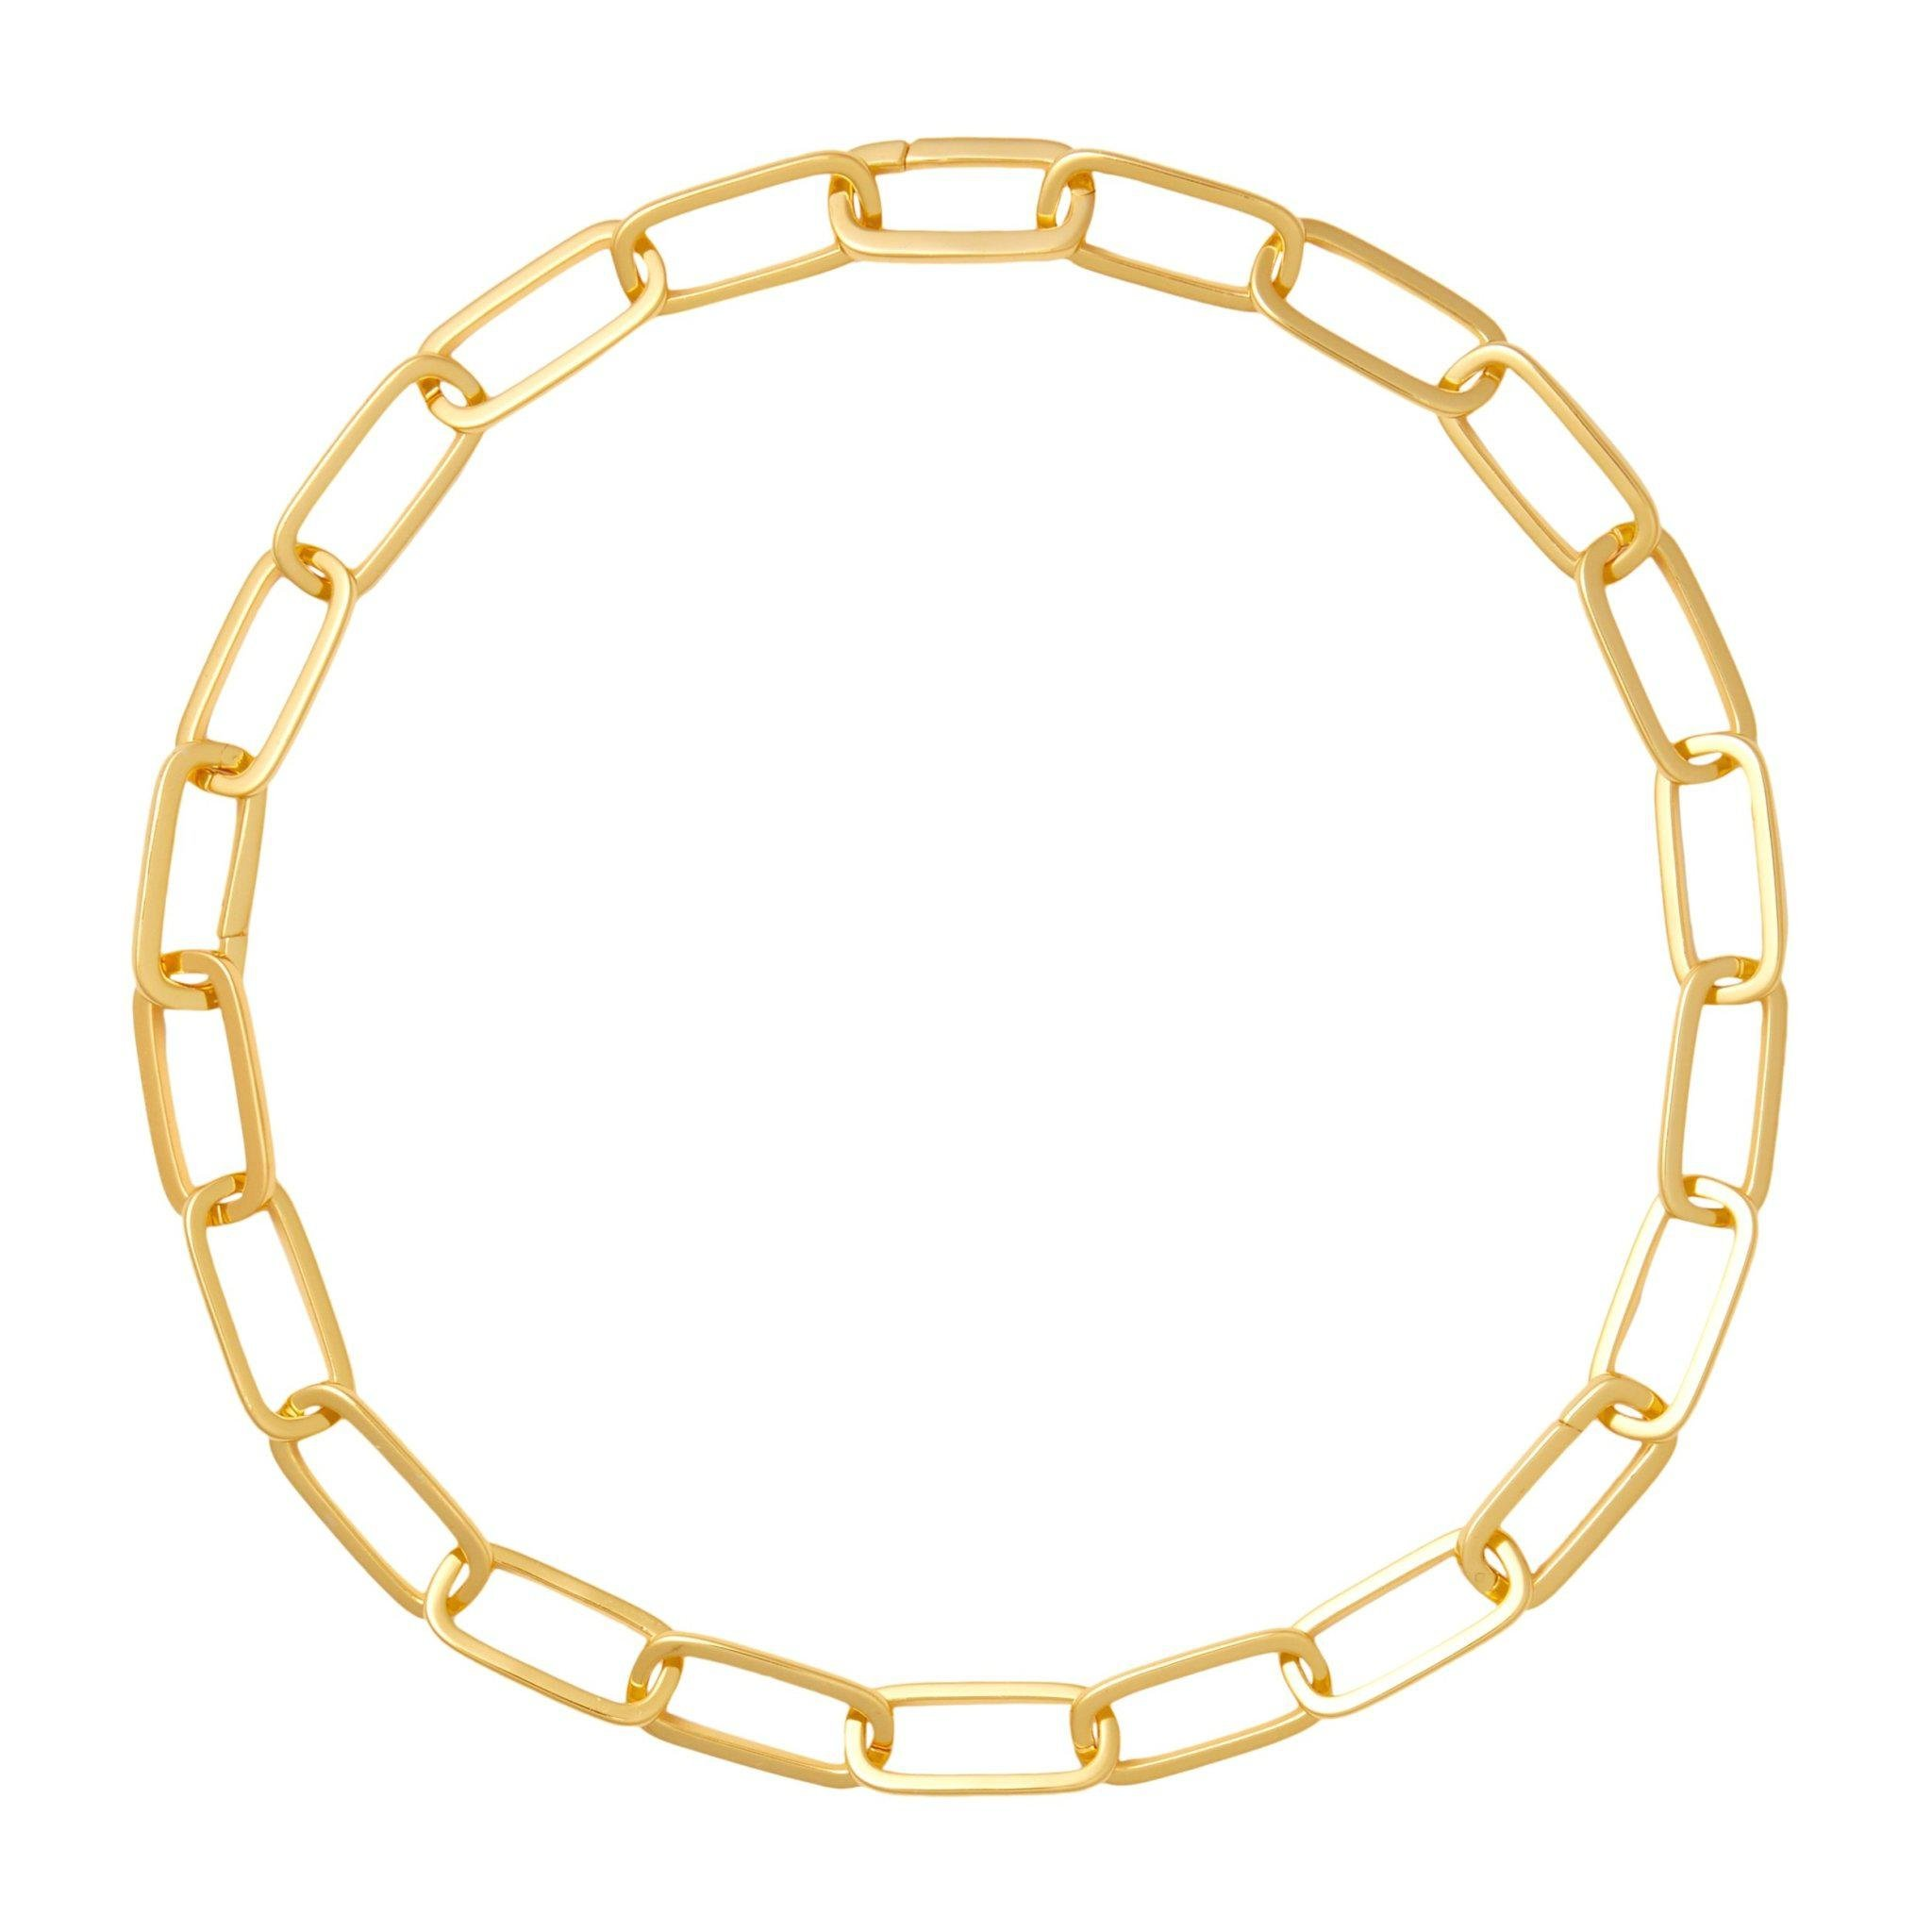 Grande Solid Sterling Paperclip Chain Necklace in Gold